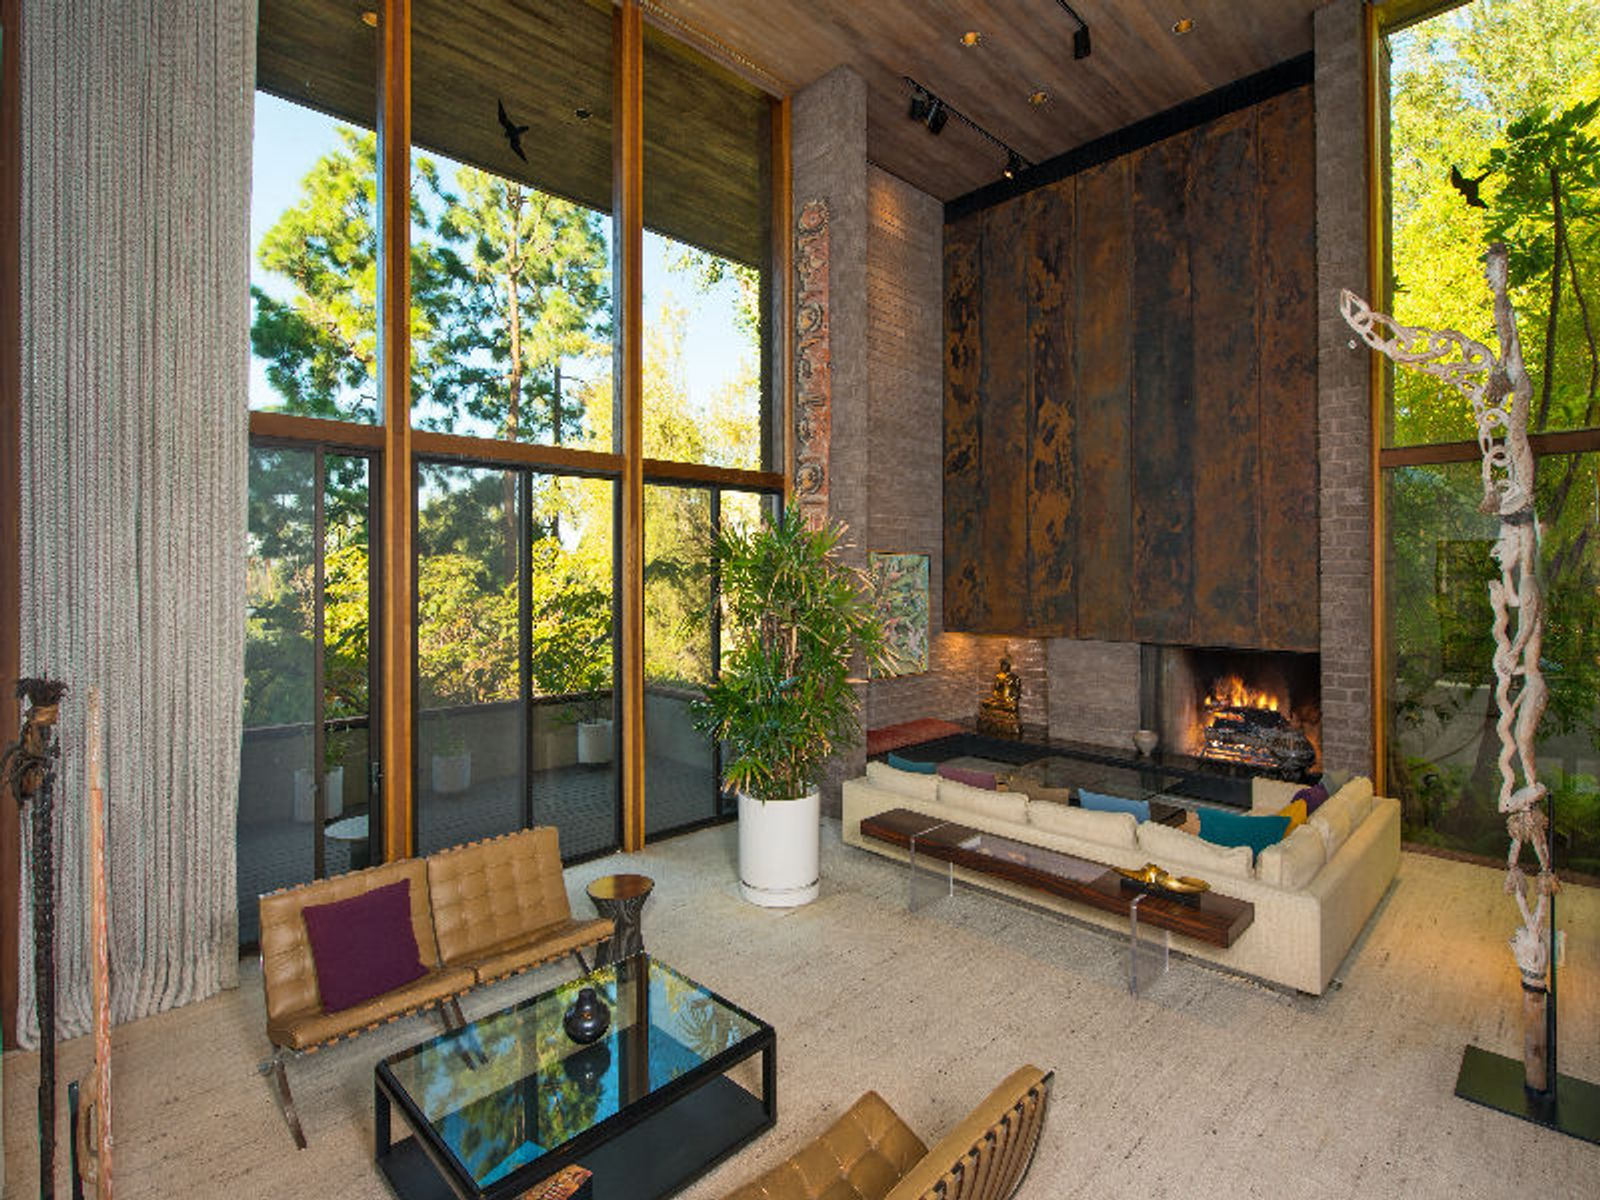 Architectural Masterpiece Prime Location, Beverly Hills CA Single Family Home - Los Angeles Real Estate